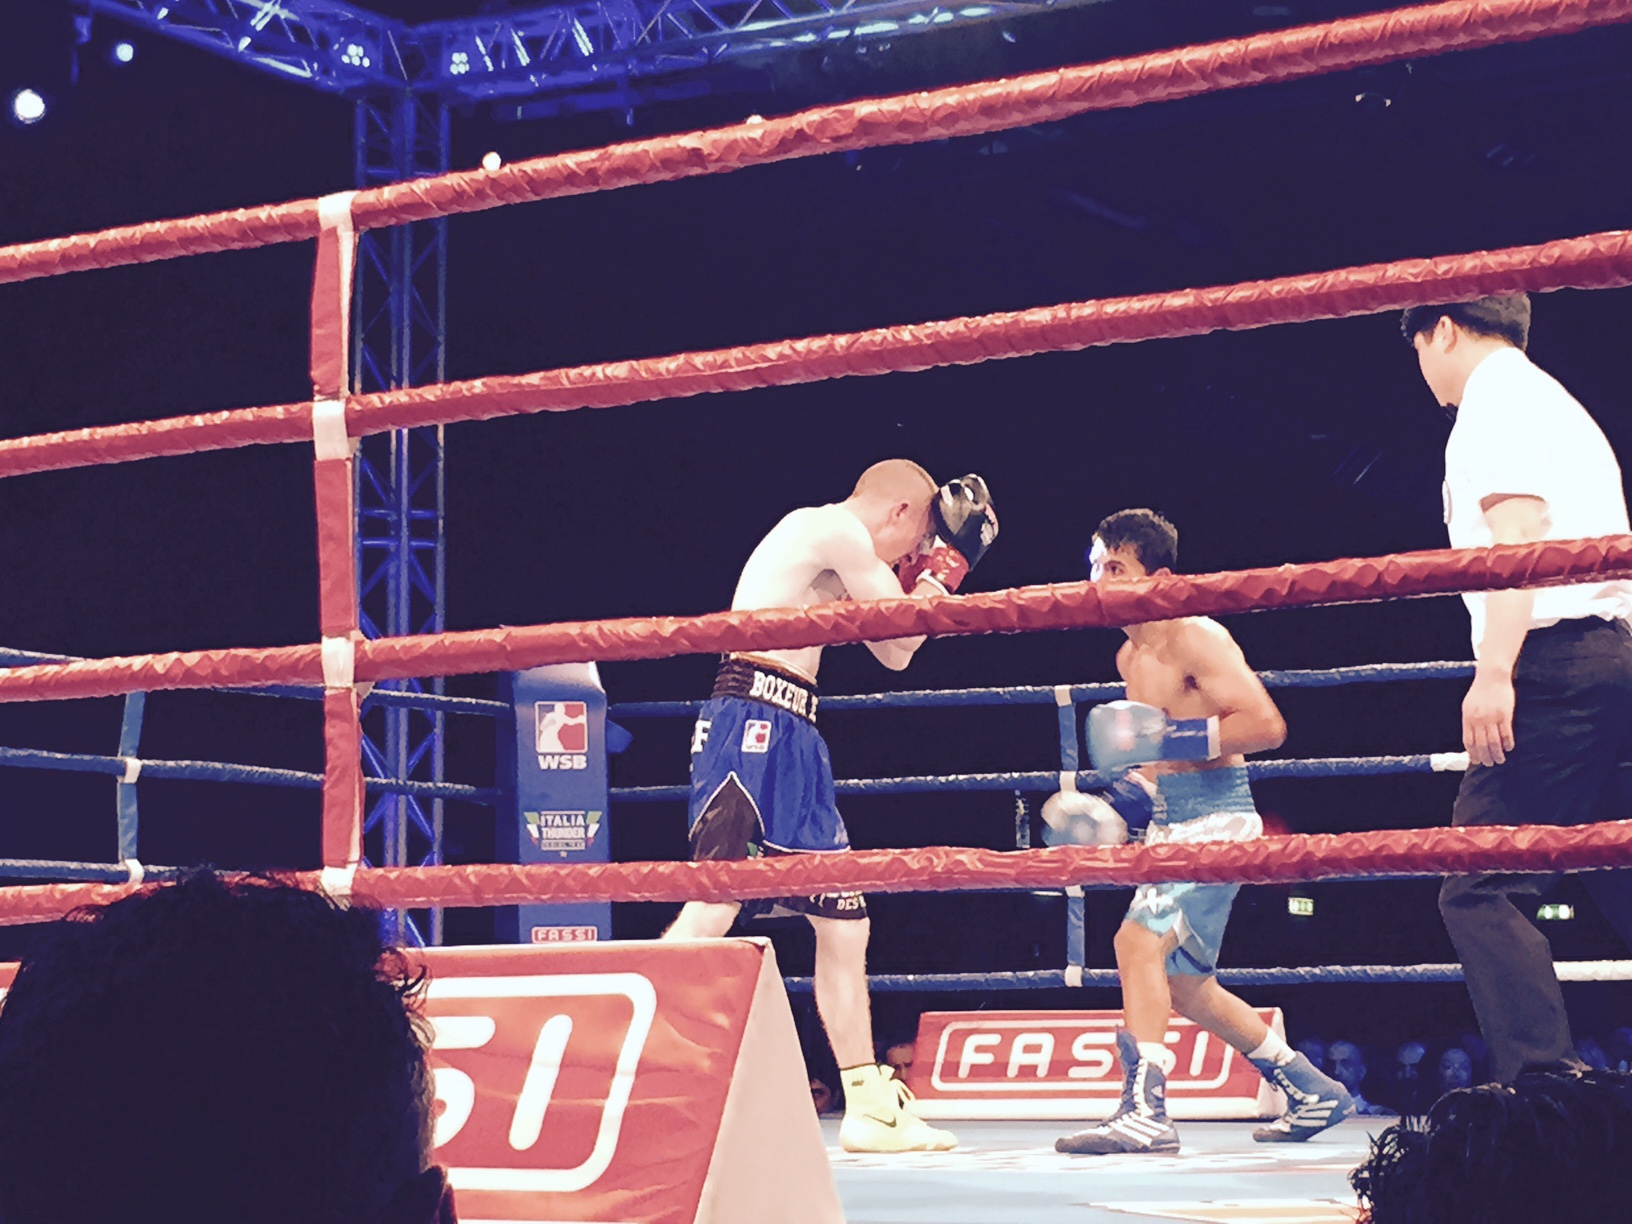 Barnes - Italia Thunder boxe 2015: 5-0 all'Argentina, Milano applaude, foto e video